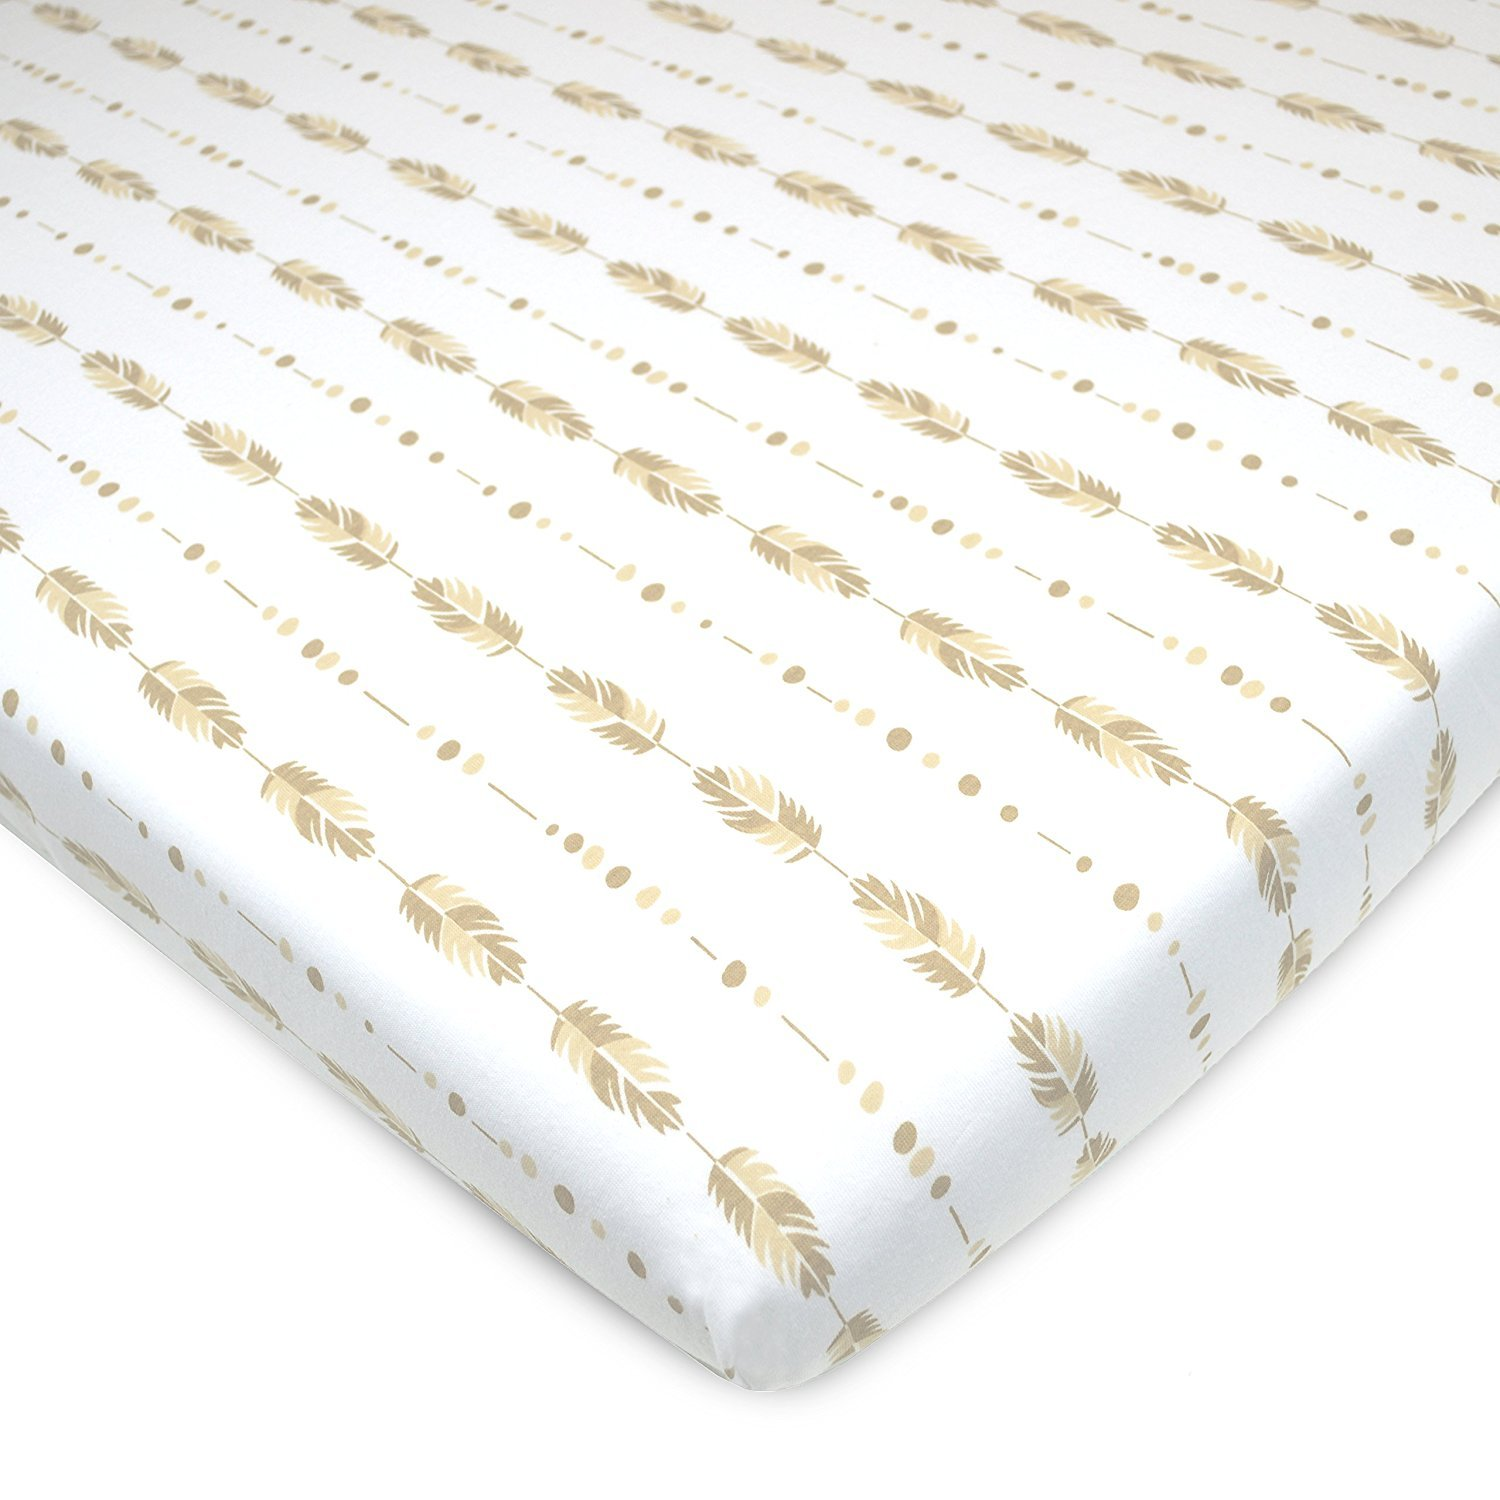 American Baby Printed 100% Natural Cotton Jersey Knit Fitted Pack N Play Playard Sheet, Taupe Feathers, Soft Breathable, for Boys and Girls American Baby Company 3556-Feather